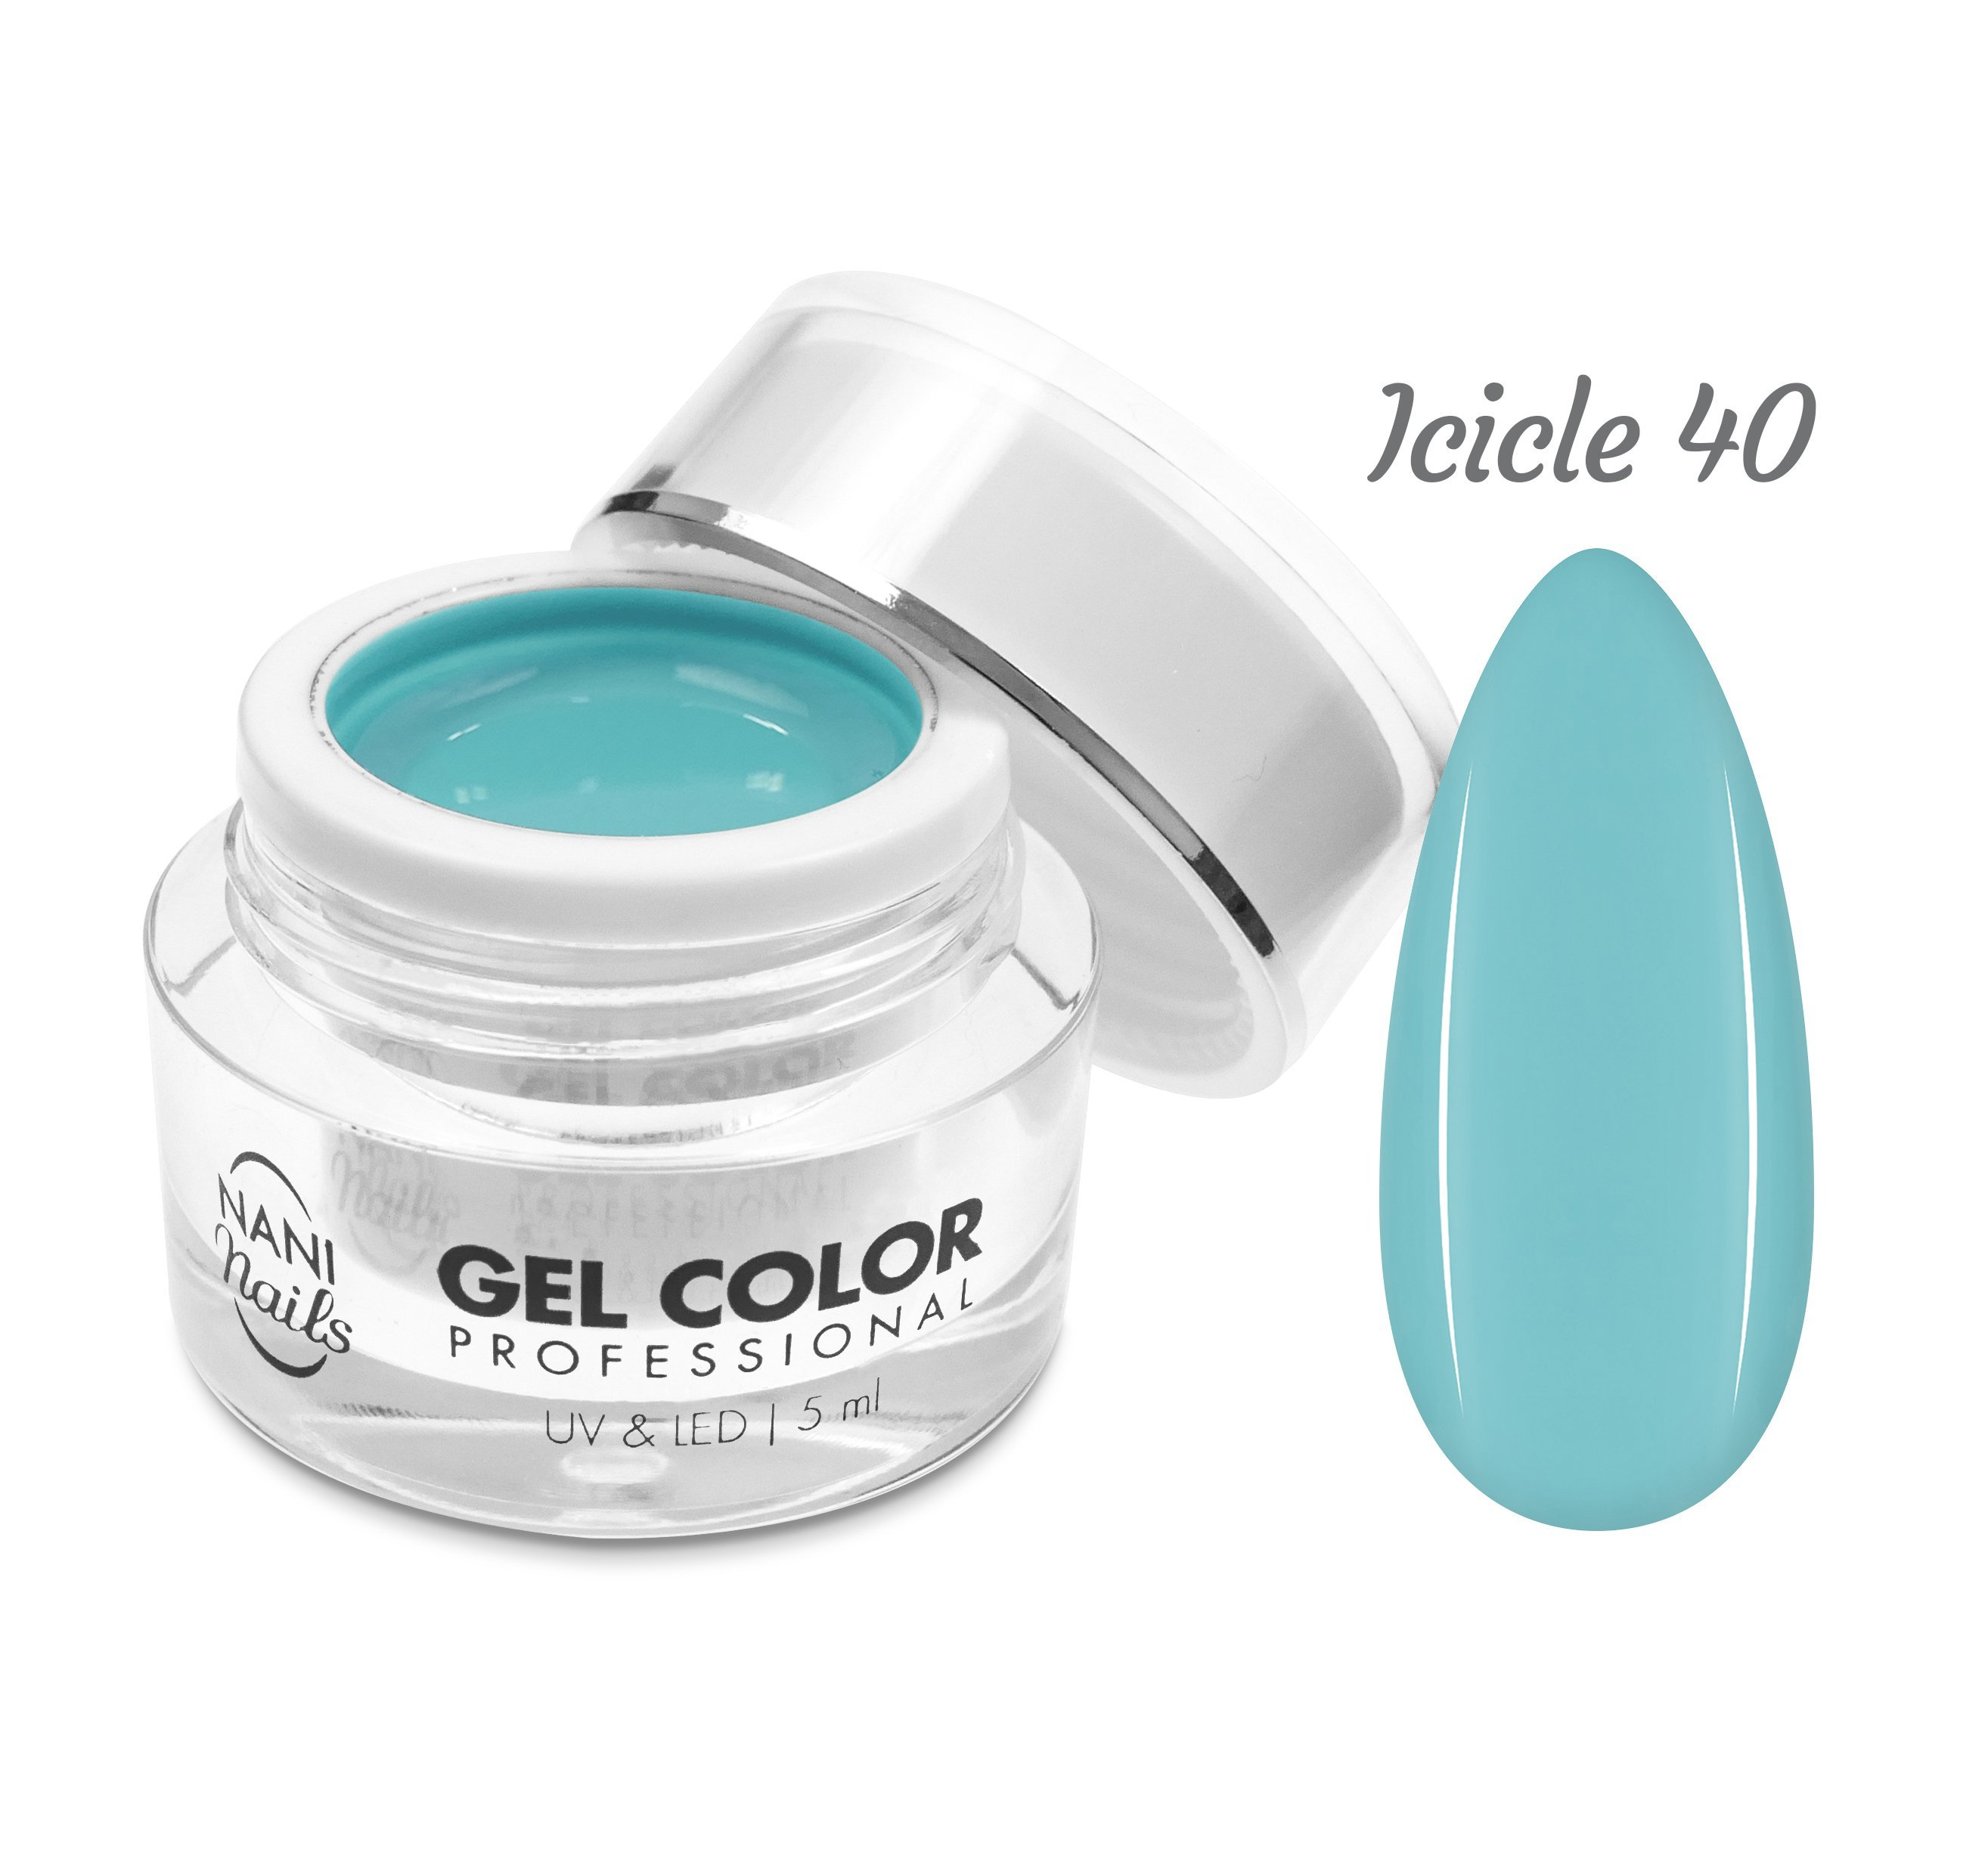 NANI UV/LED gél Professional 5 ml - Icicle